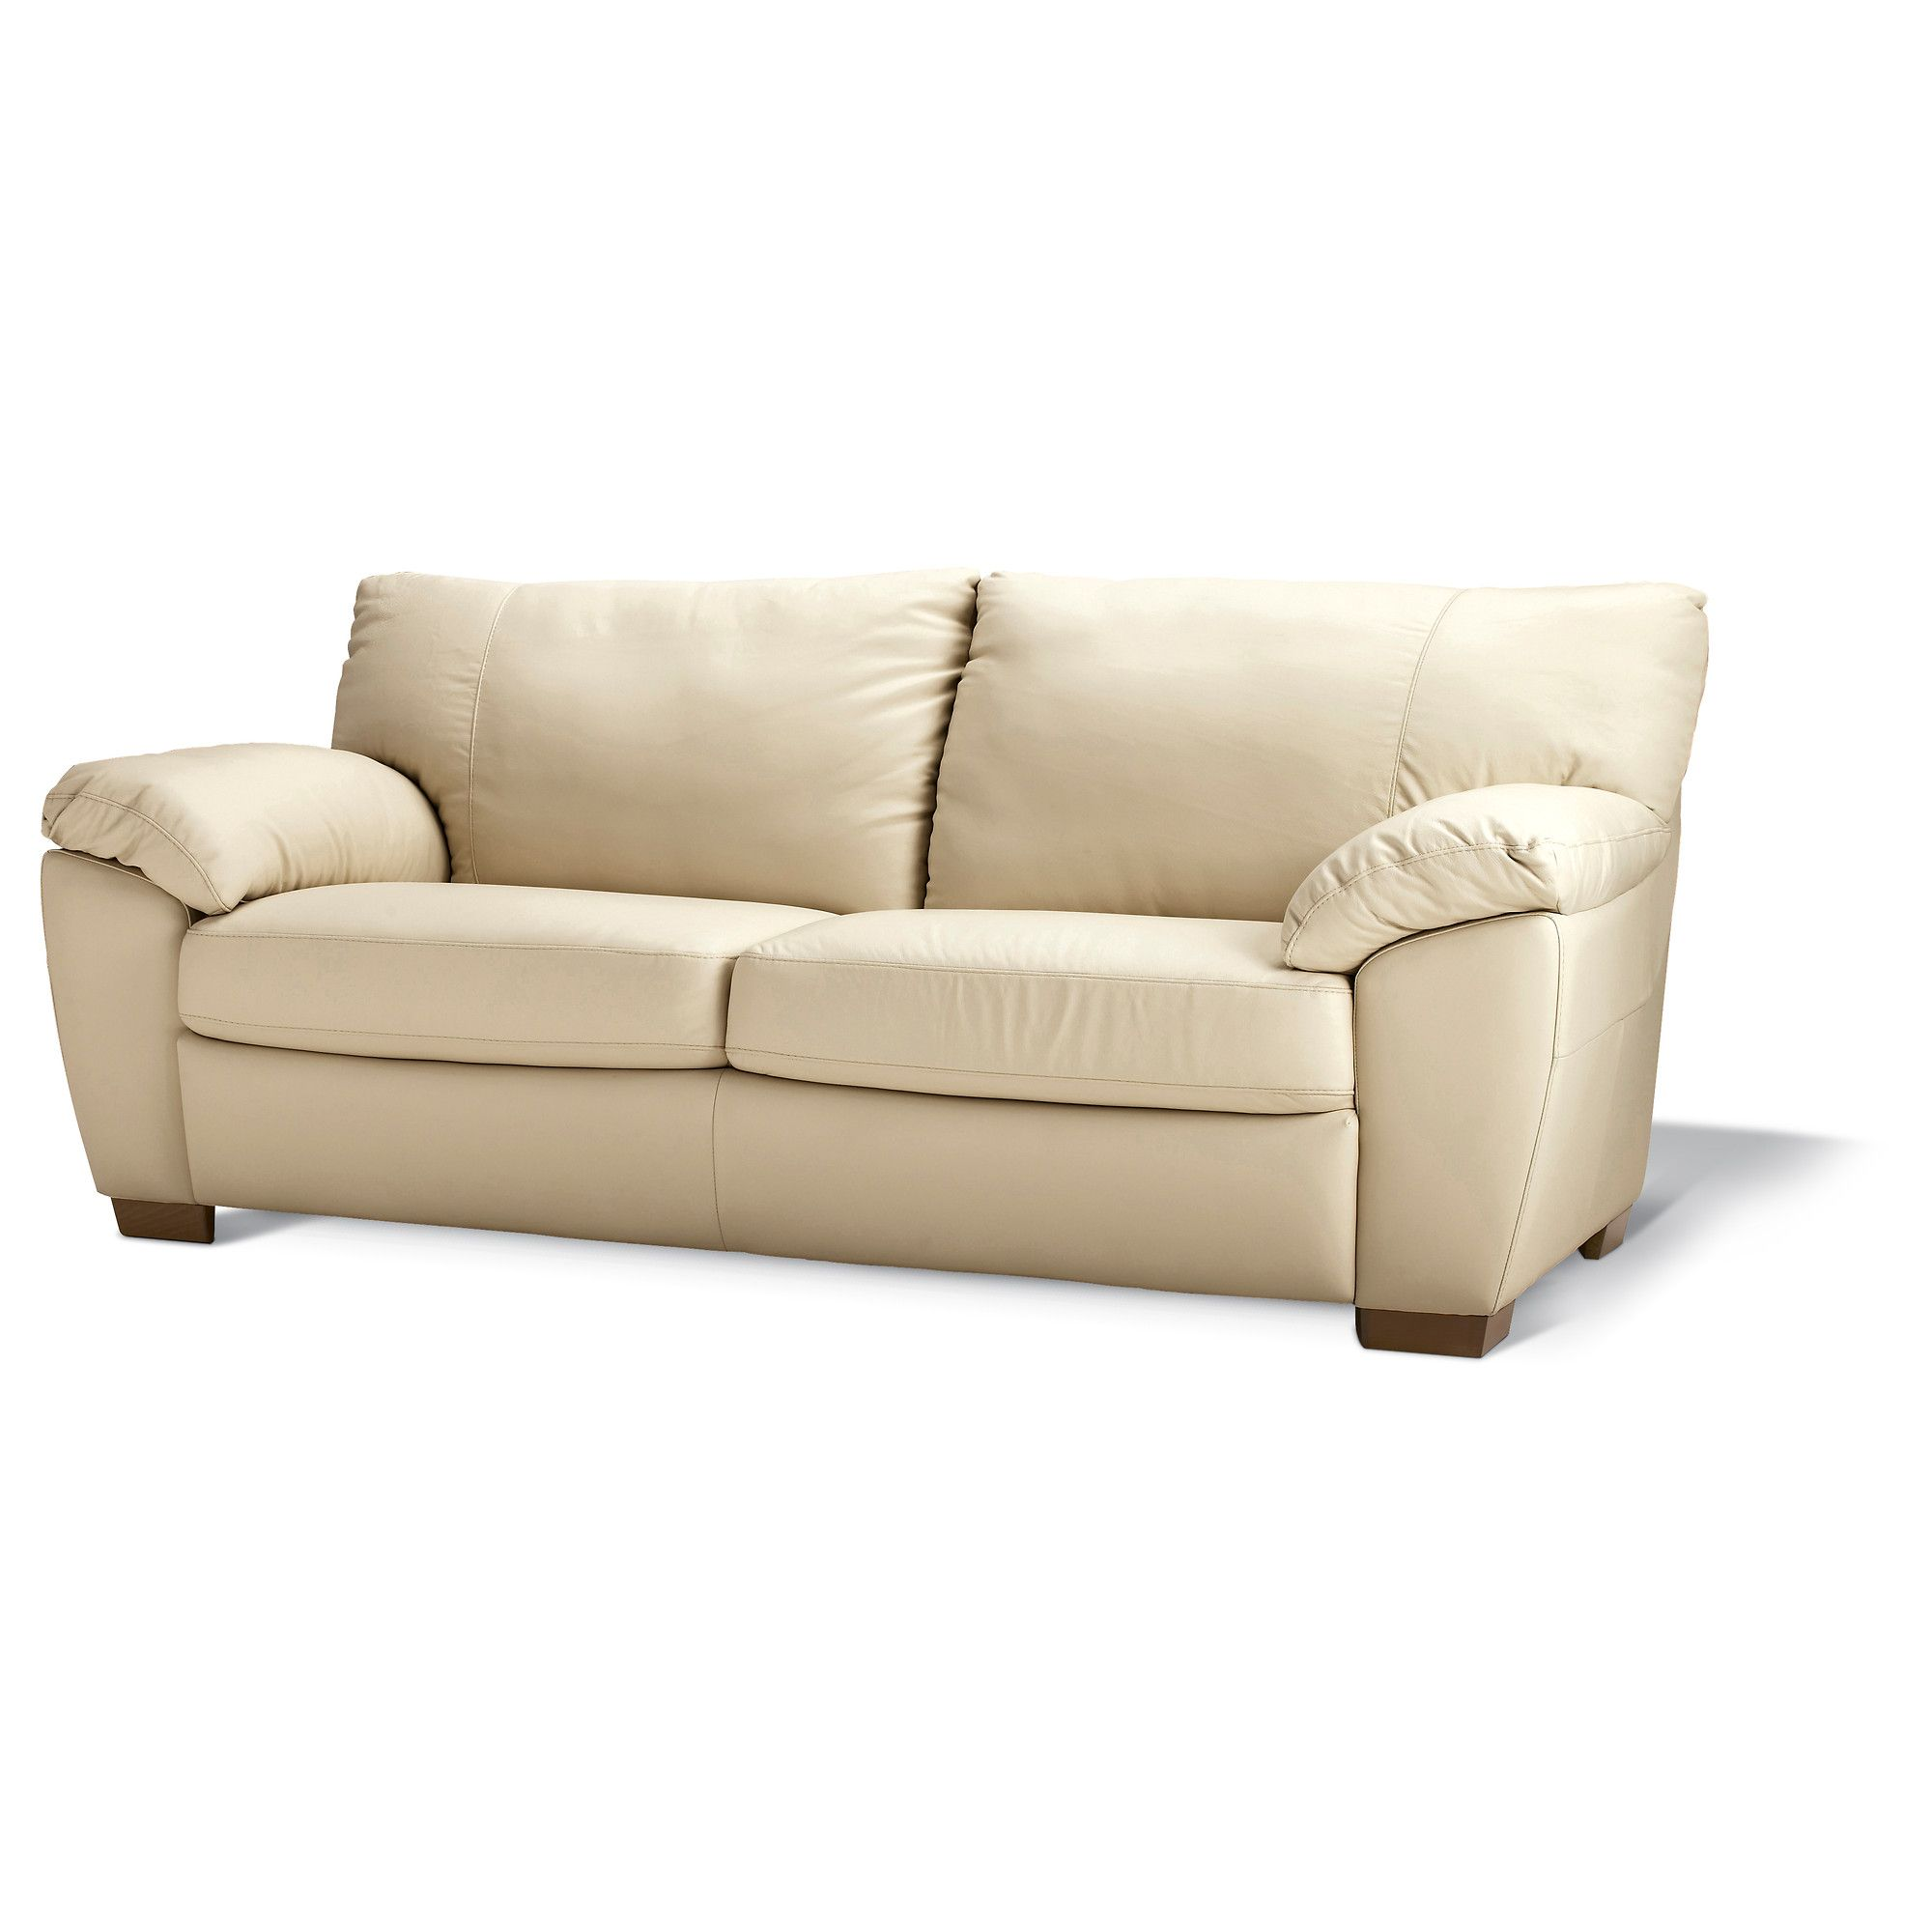 VRETA Sofa Mjuk ivory IKEA New Home Ideas